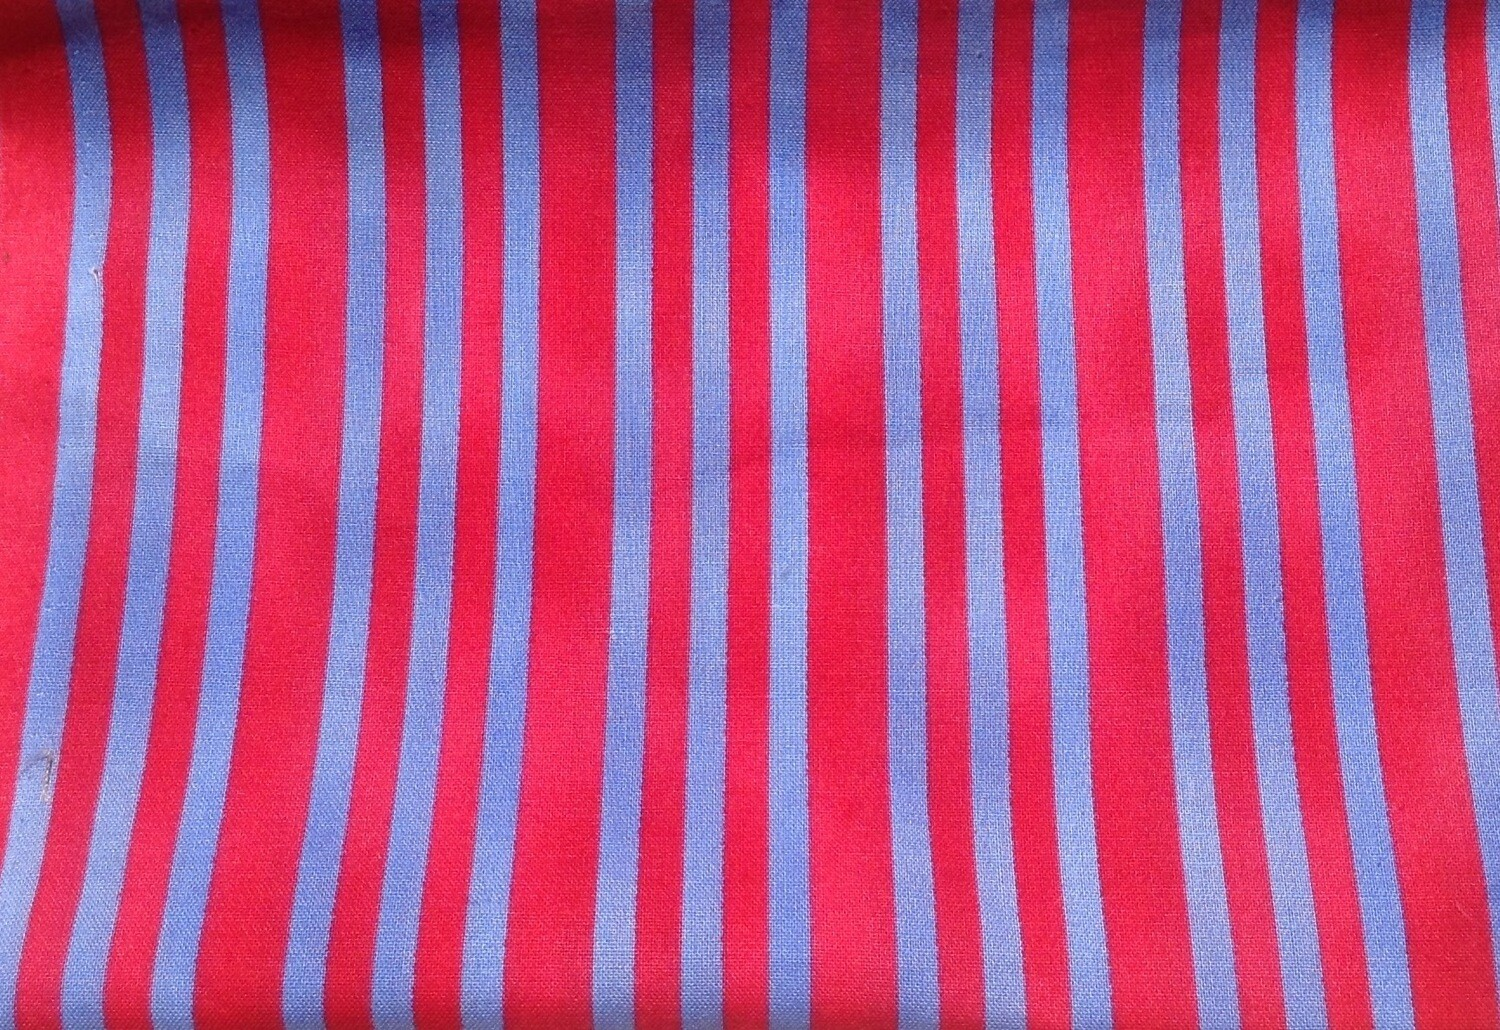 Fabric: Blue & Red / Cotton